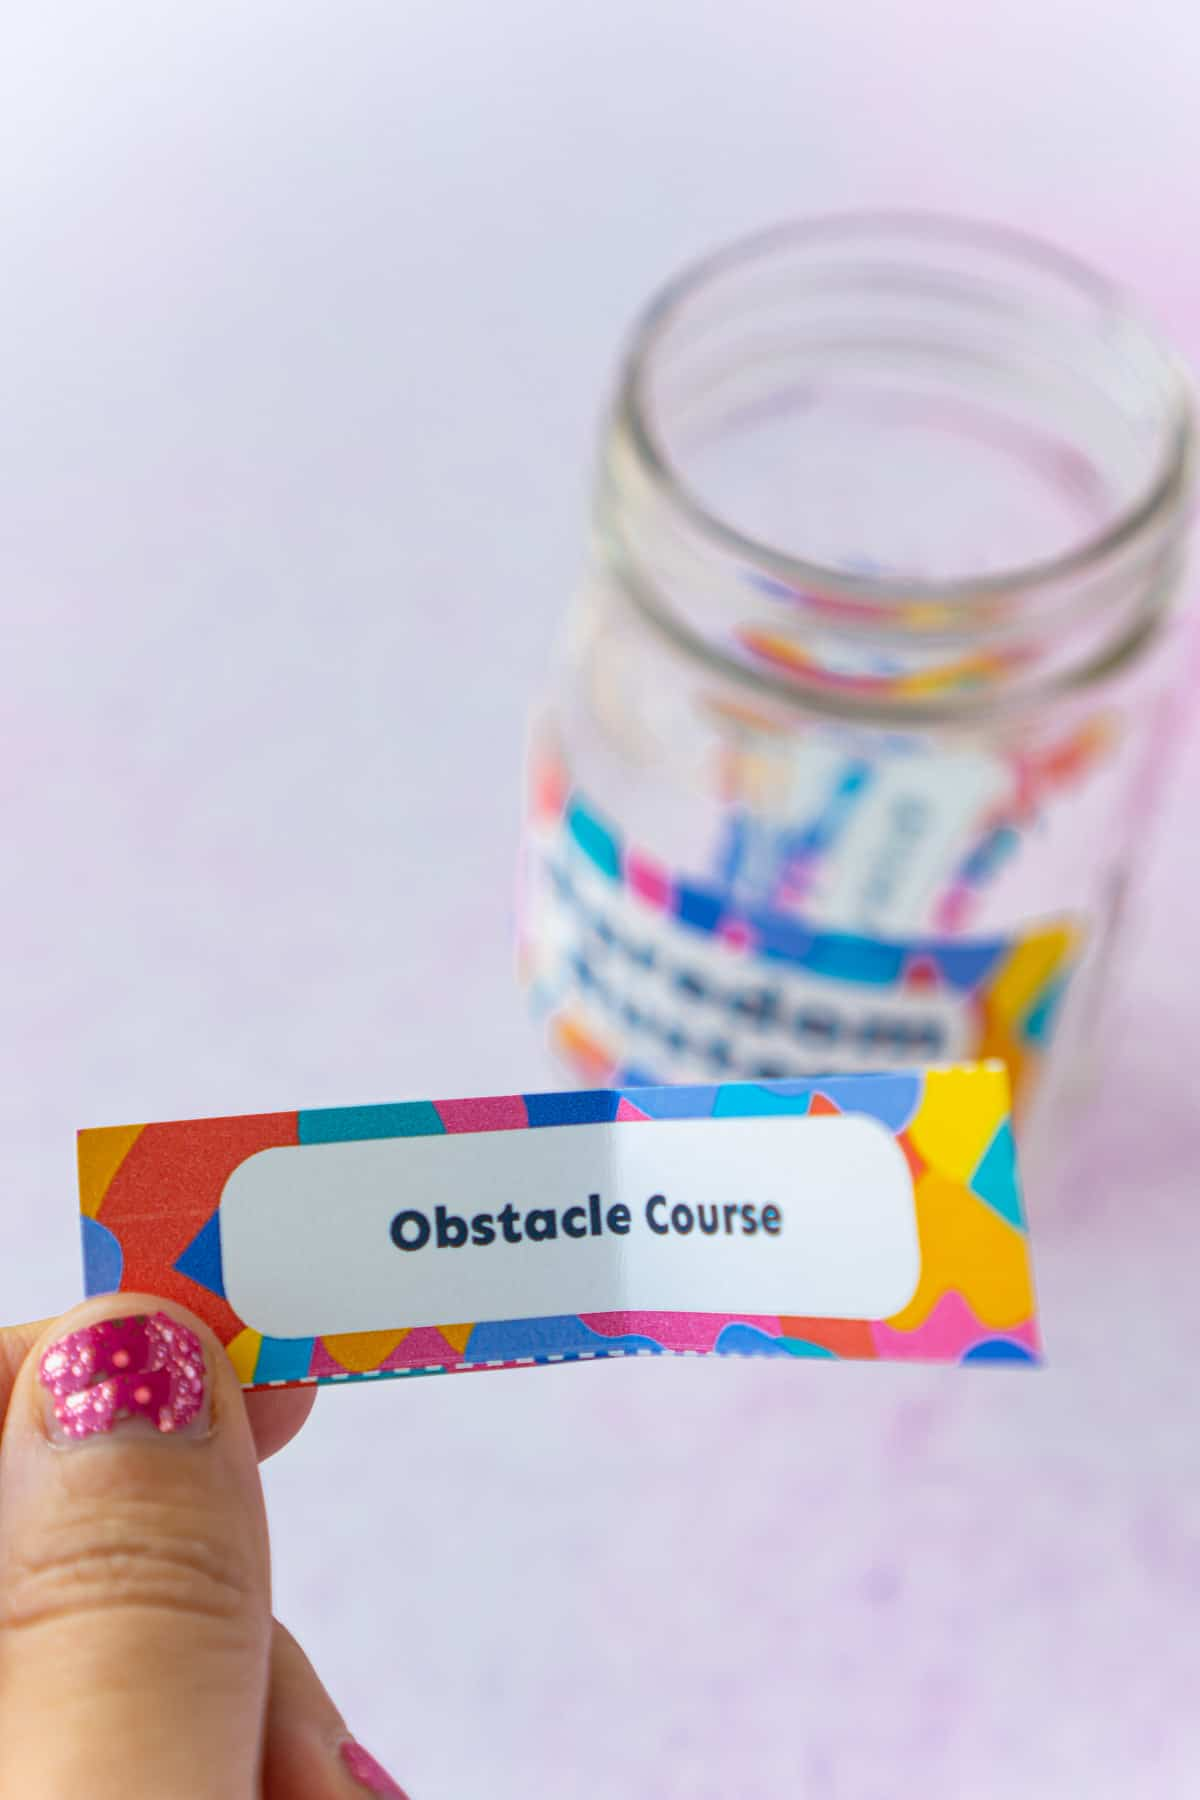 A woman's hand holding a piece of paper that says obstacle course